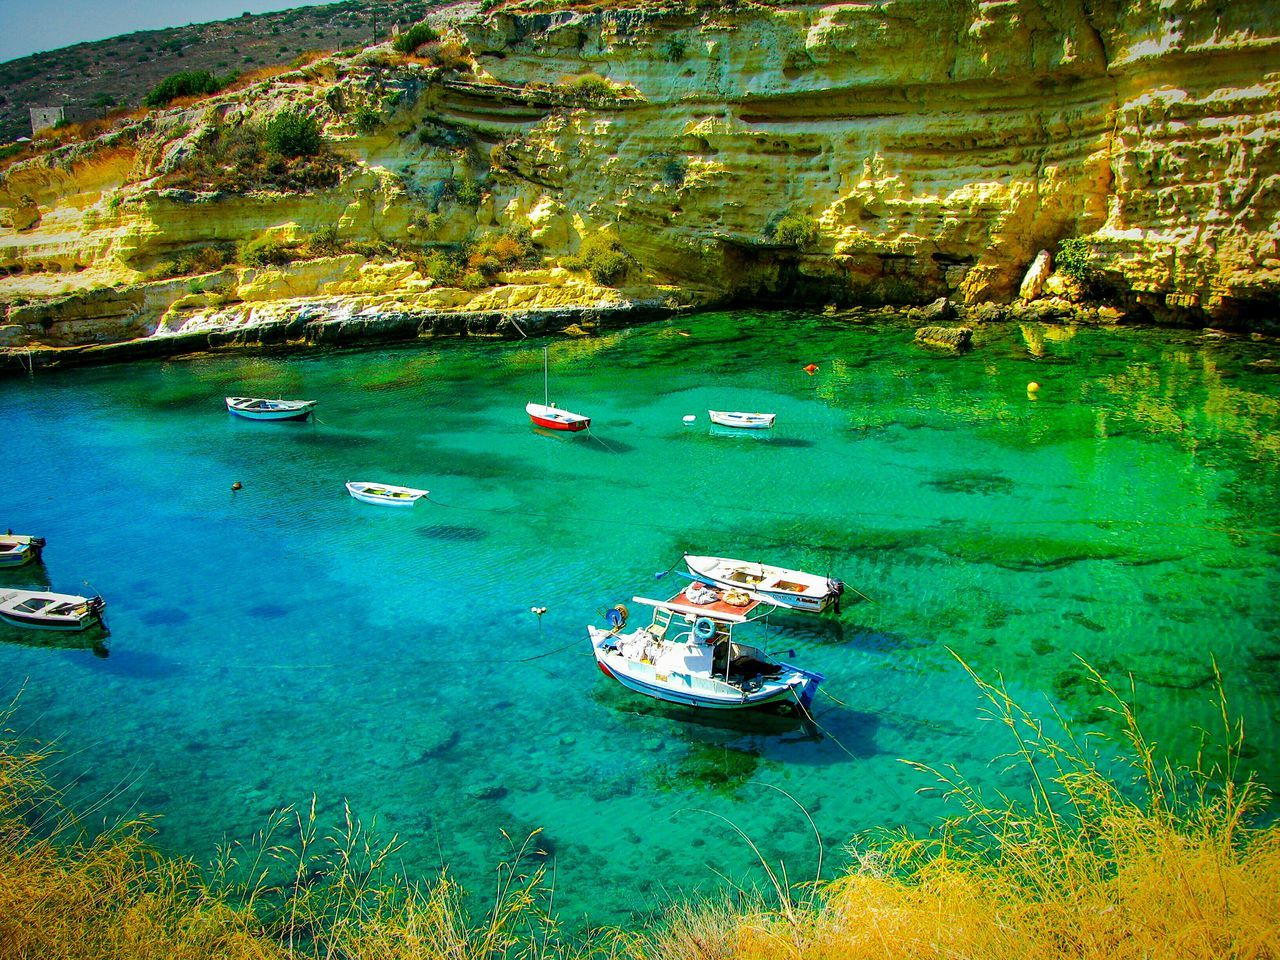 Boats Boat Trawlers Nautical Vessel Water Transportation Nature Sea Scenics Sailboat Beauty In Nature Summer Cliff Clear Sea Live For The Story The Great Outdoors - 2017 EyeEm Awards Crystal Clear Waters Green Sea Seascape Landscapes Landscape Greek Islands Tranquility Tranquil Scene